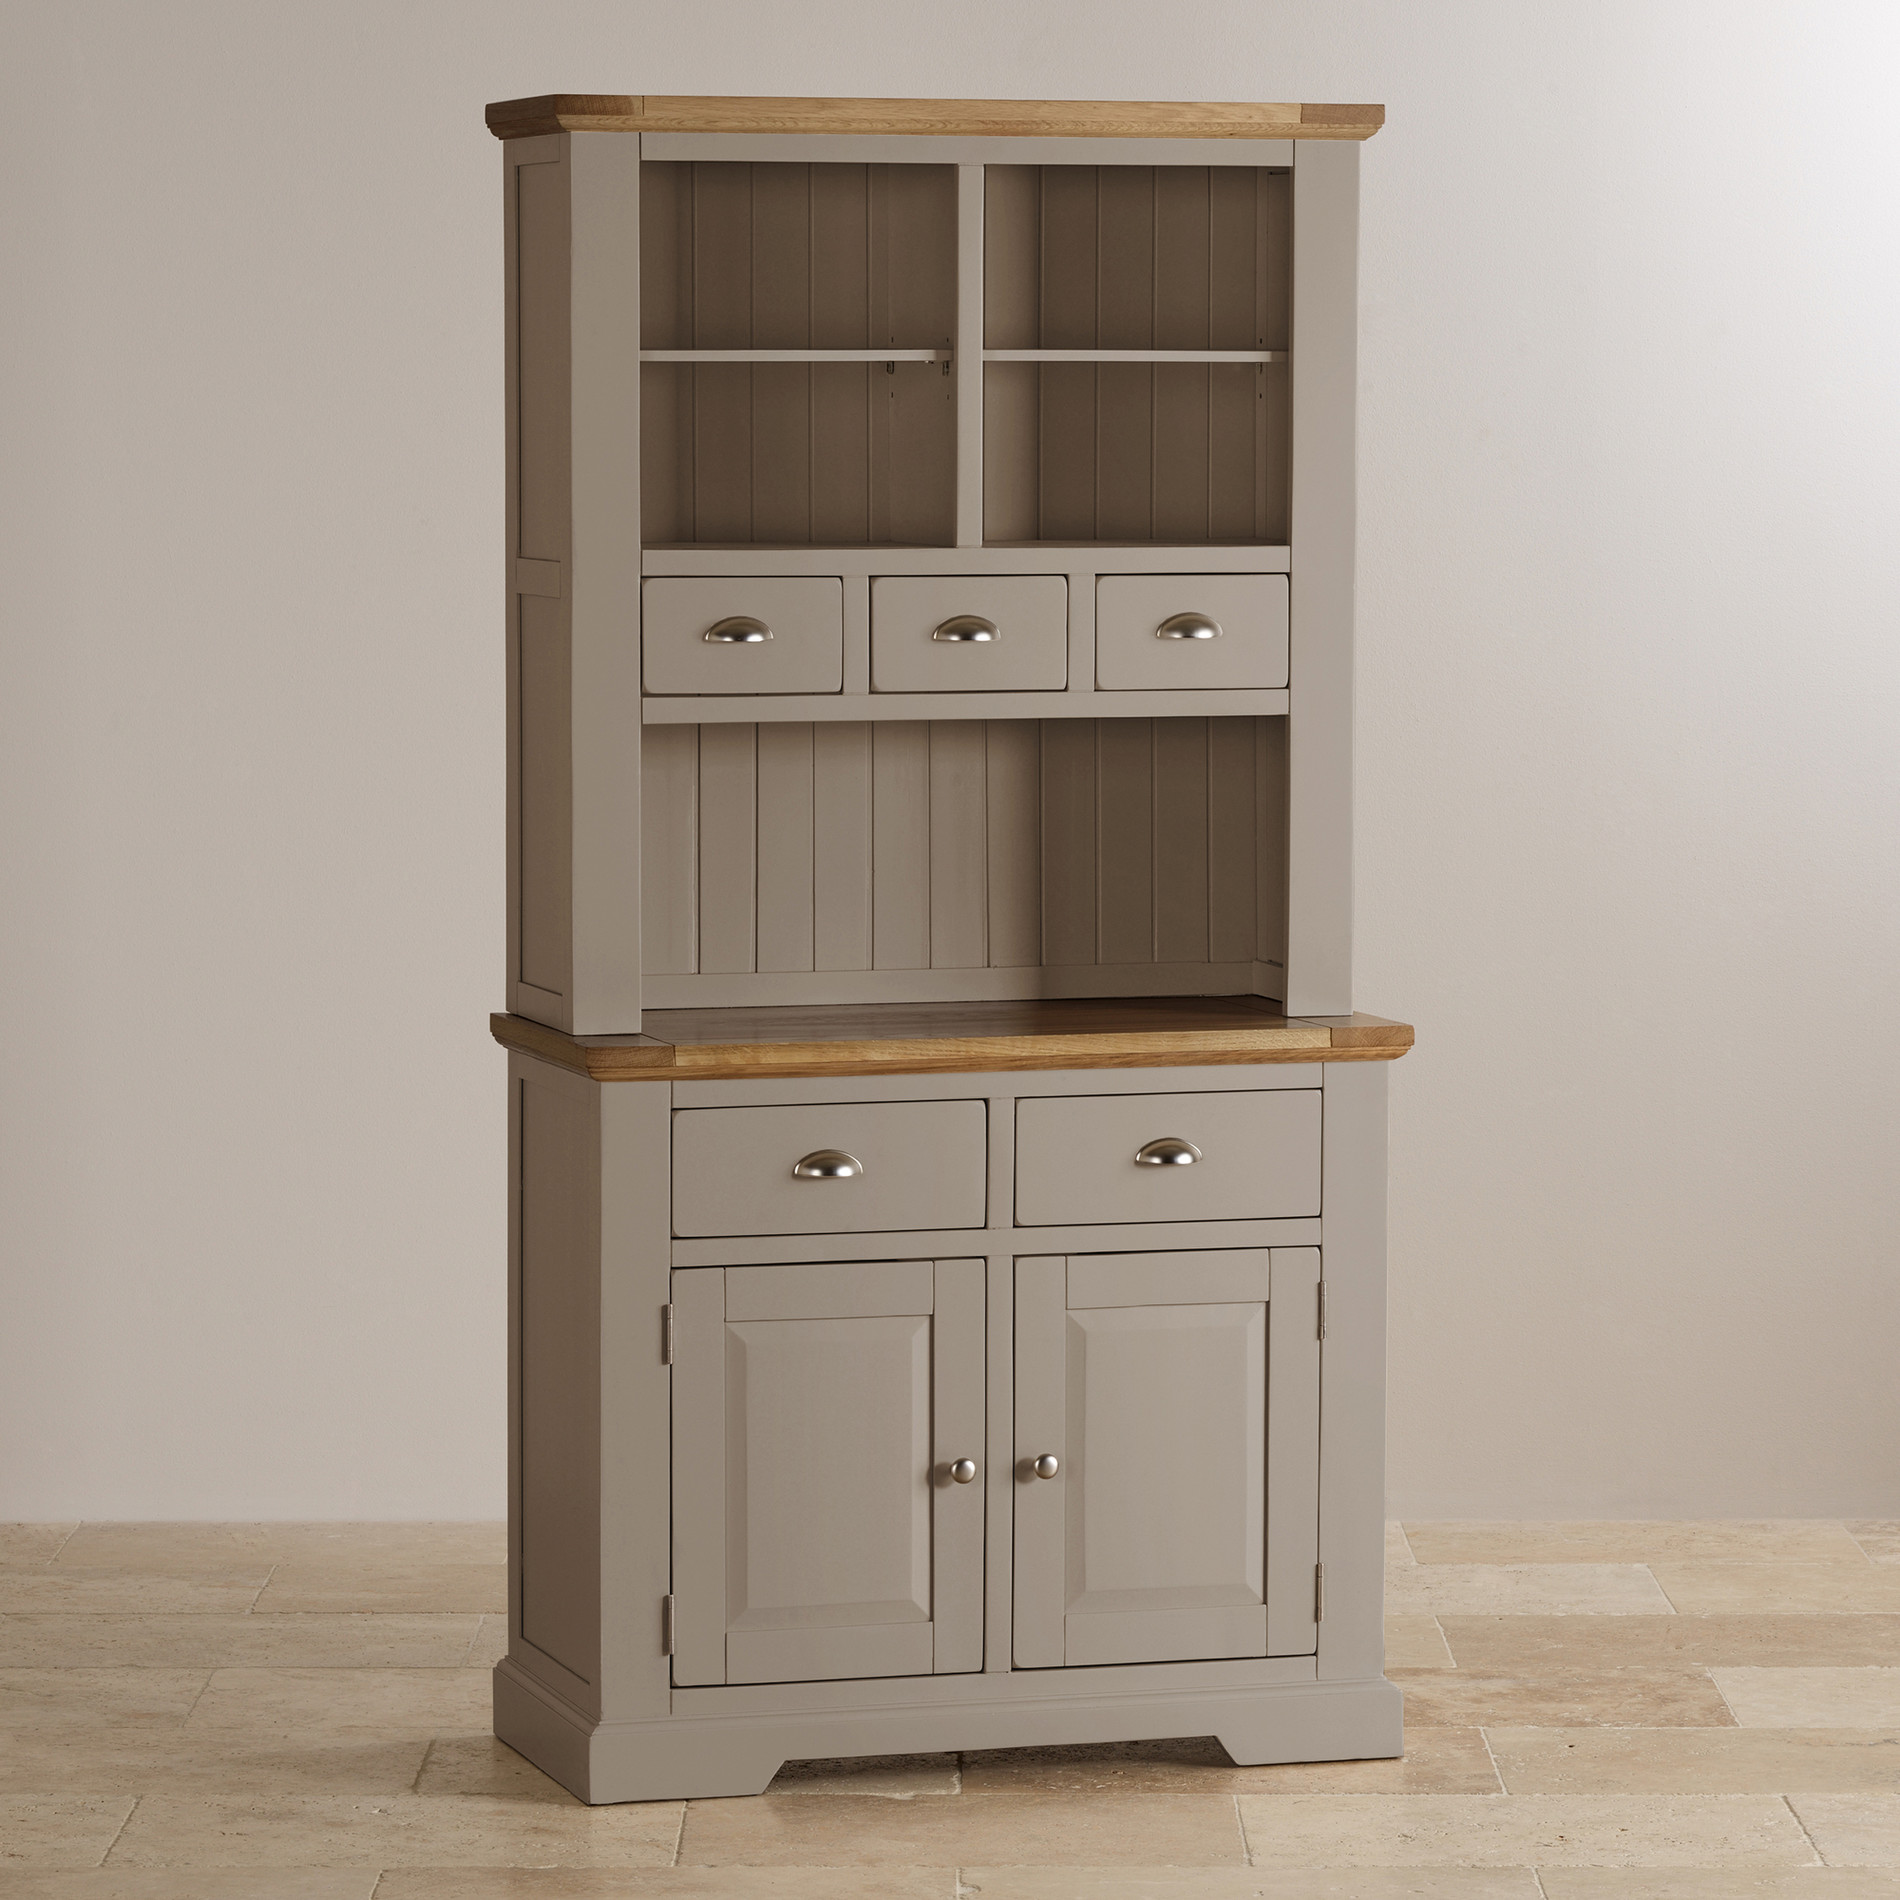 Natural oak and light grey painted small dresser